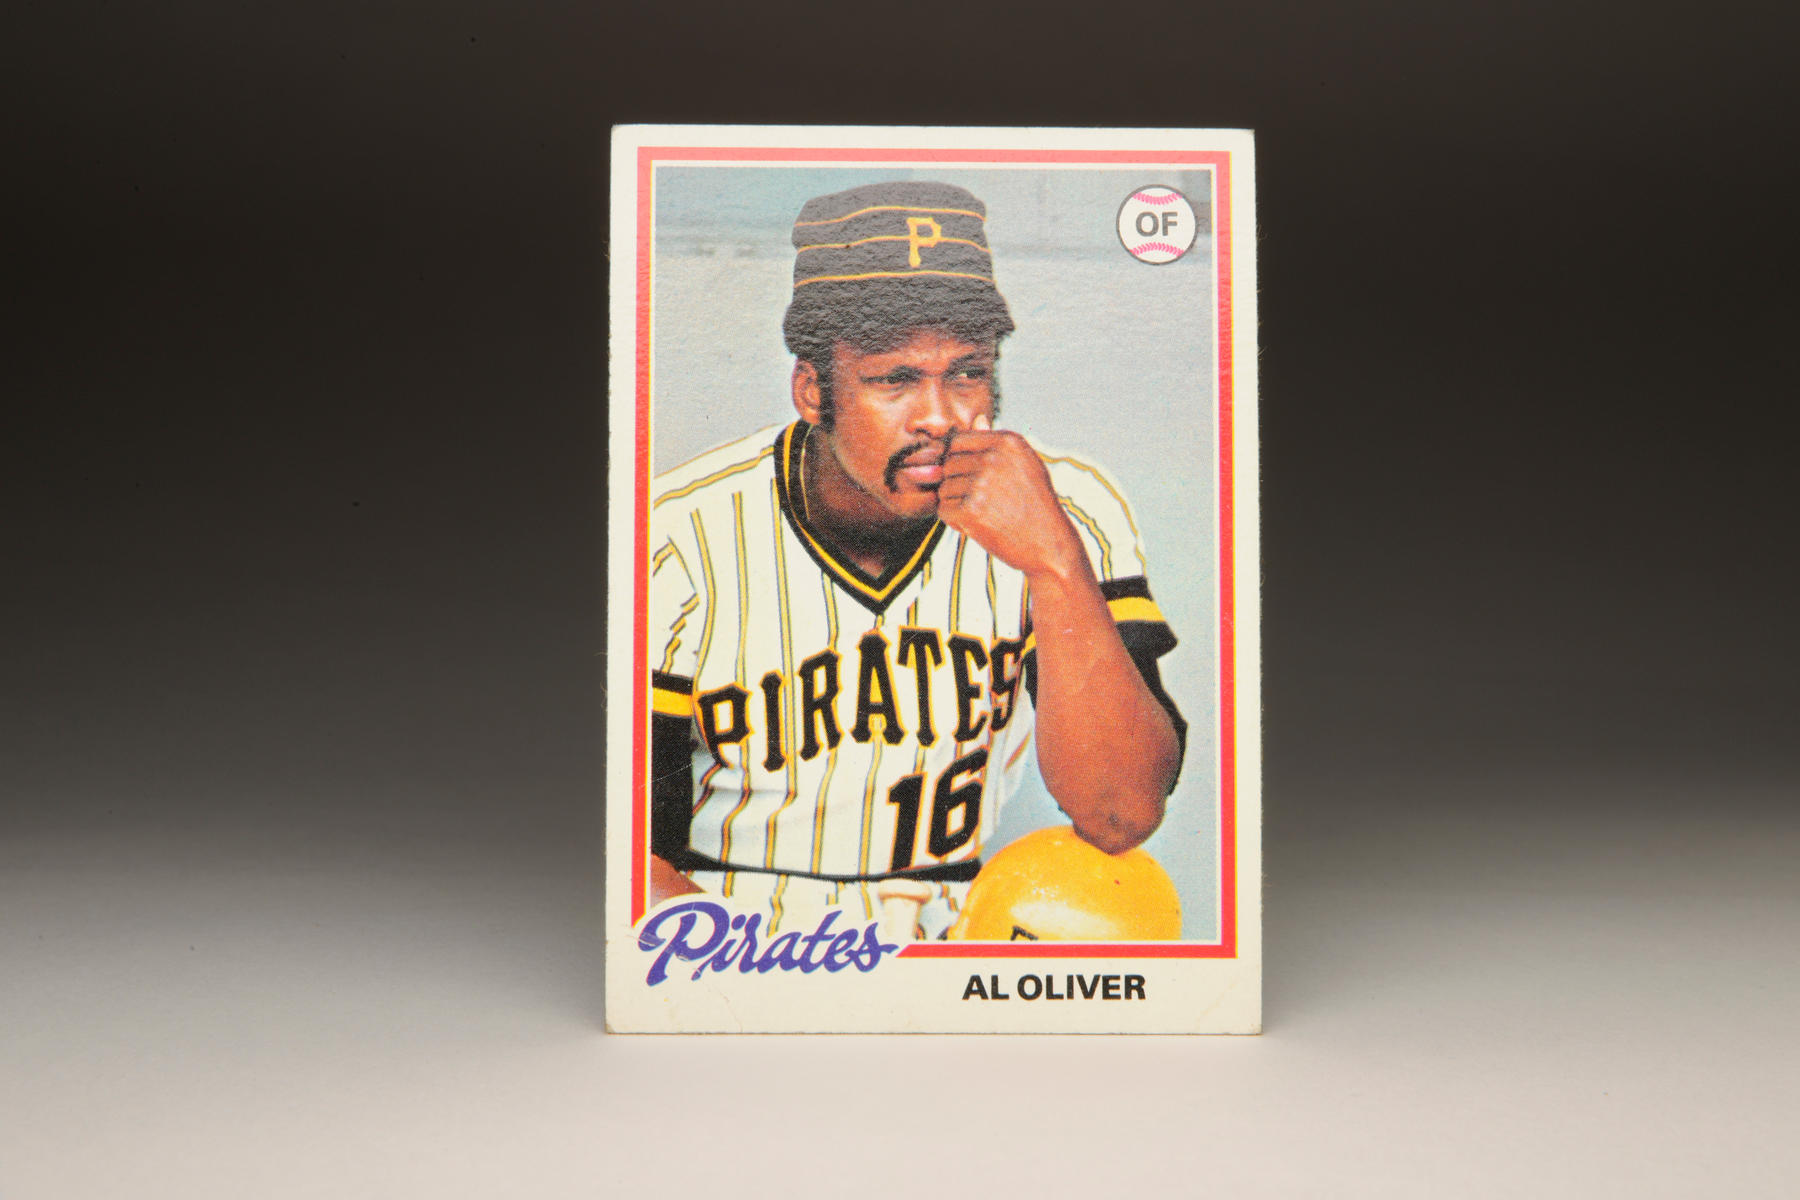 1978 Al Oliver Topps card. (Milo Stewart Jr. / National Baseball Hall of Fame)